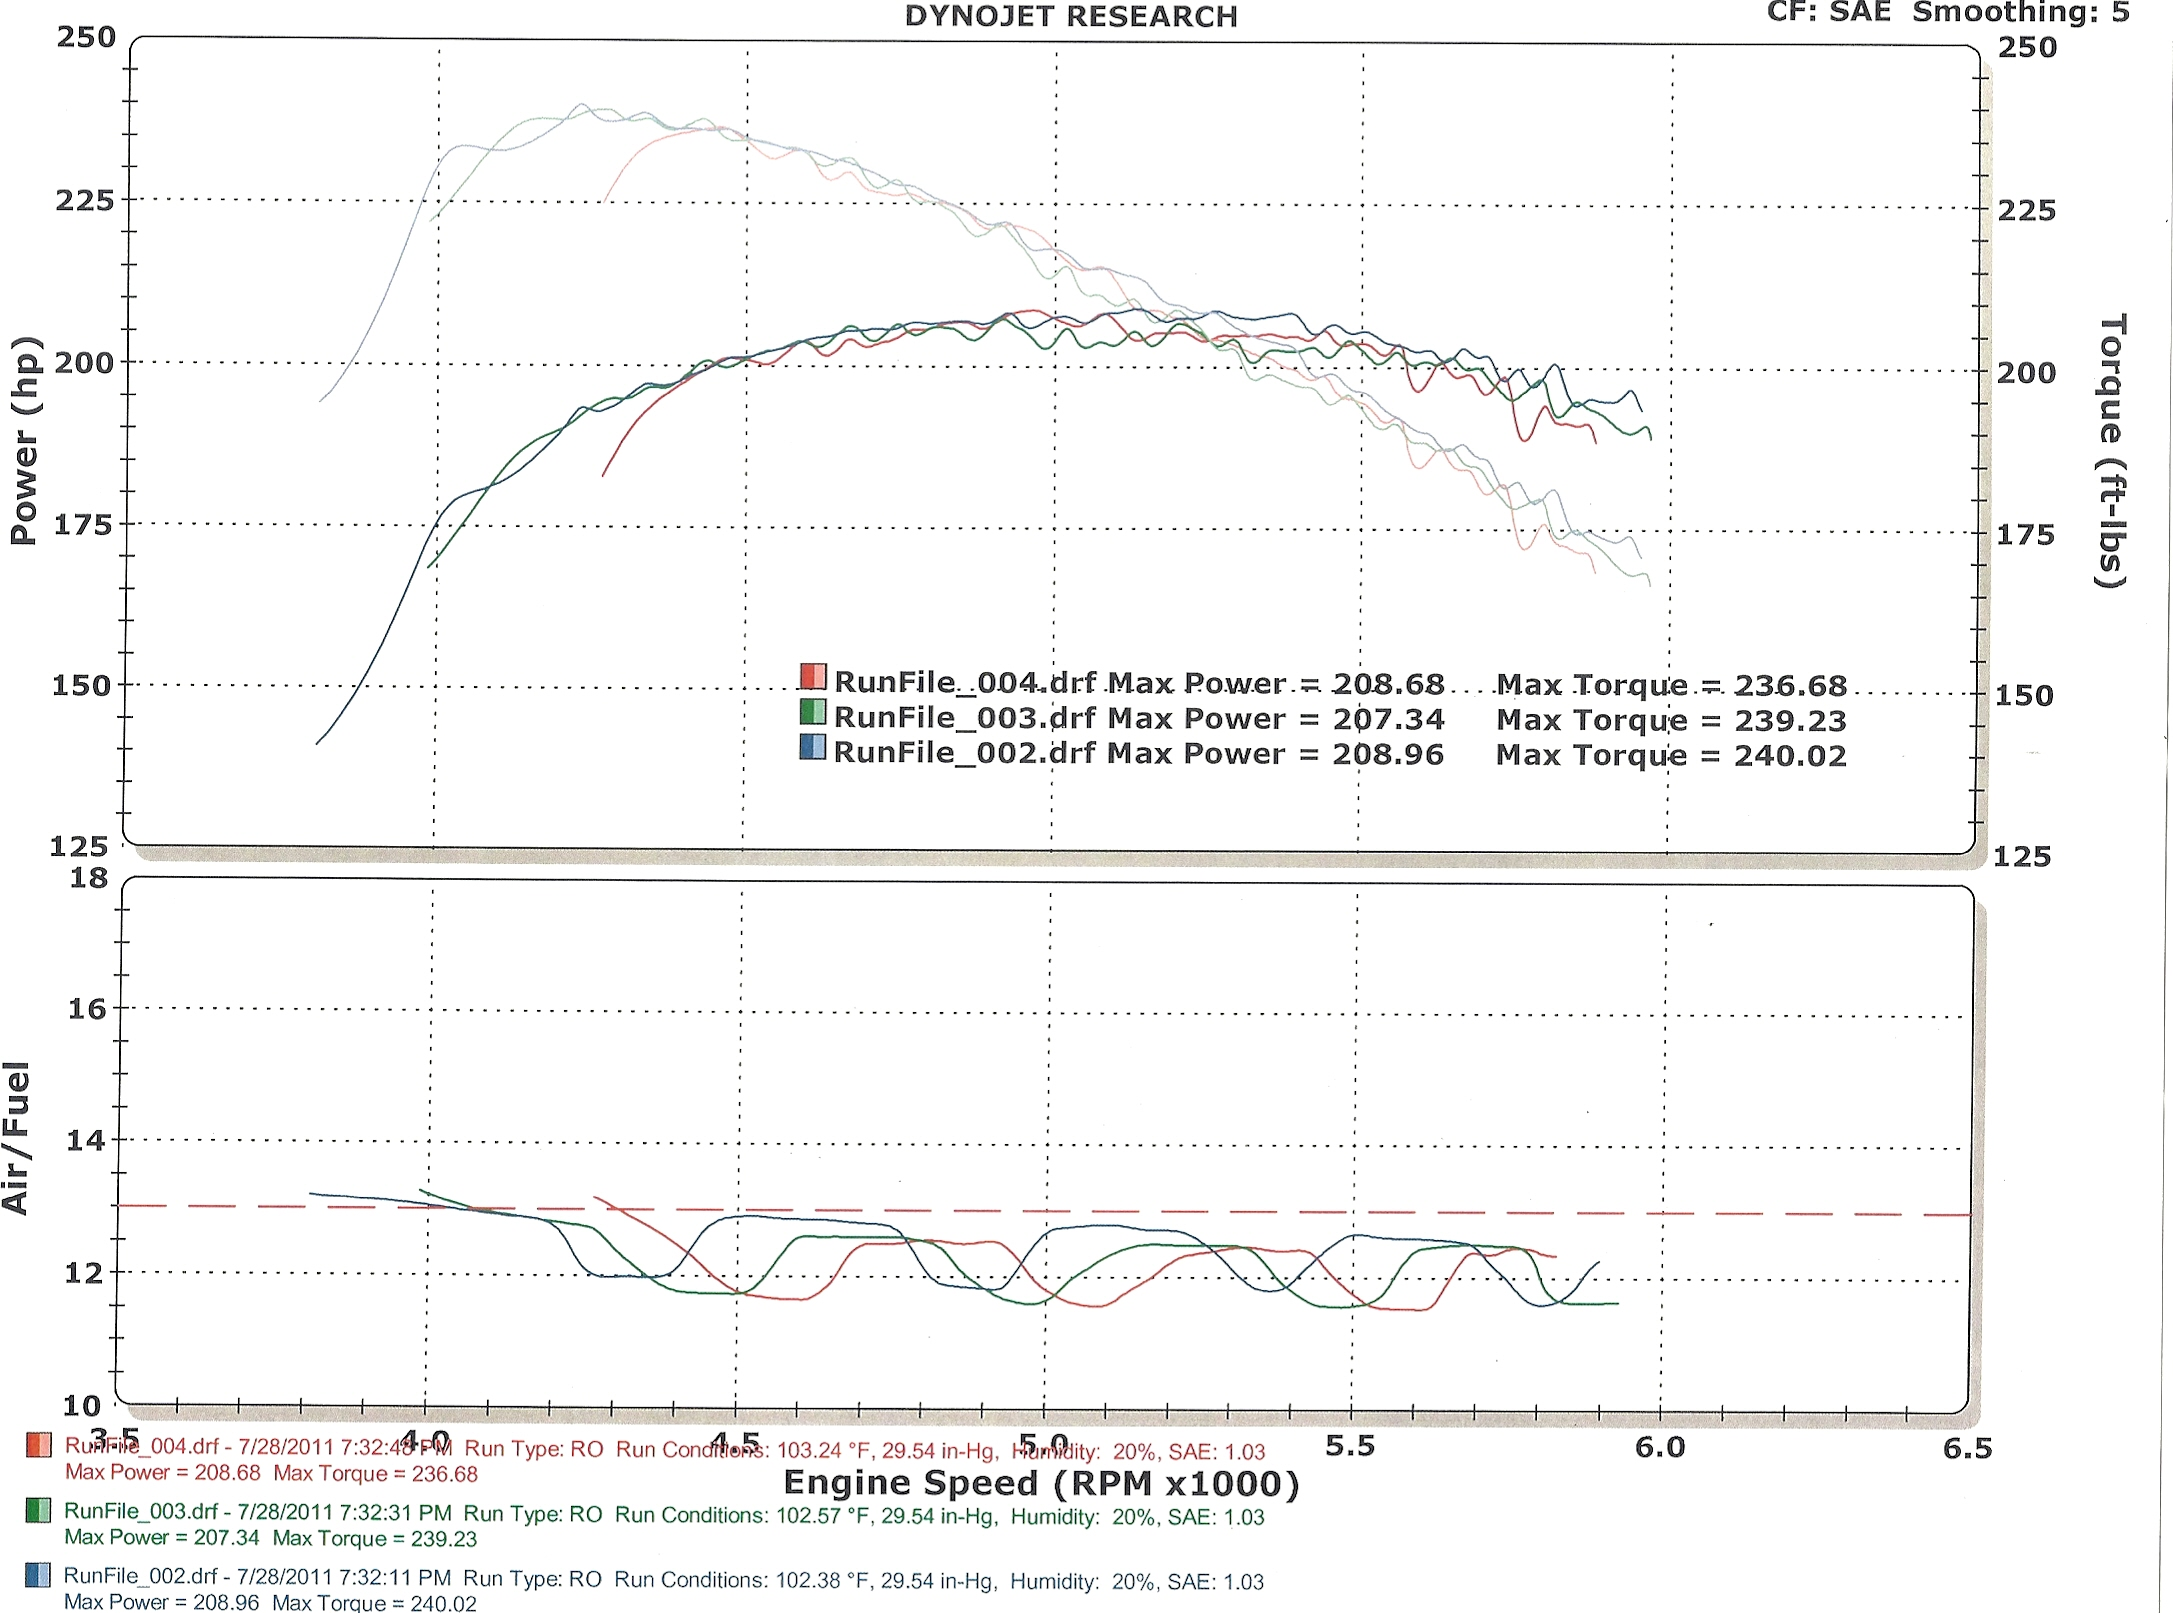 Pontiac Fiero Dyno Graph Results